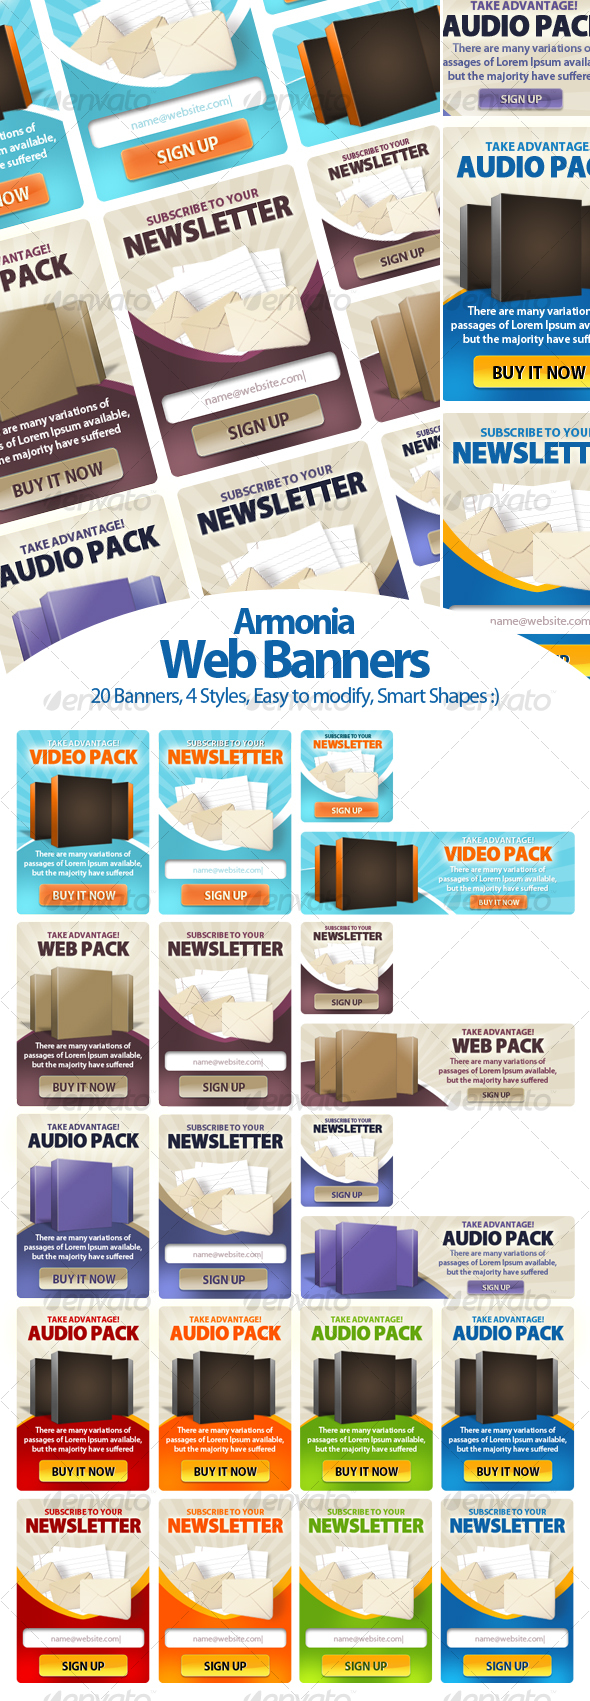 Armonia Web Banners - Web Elements